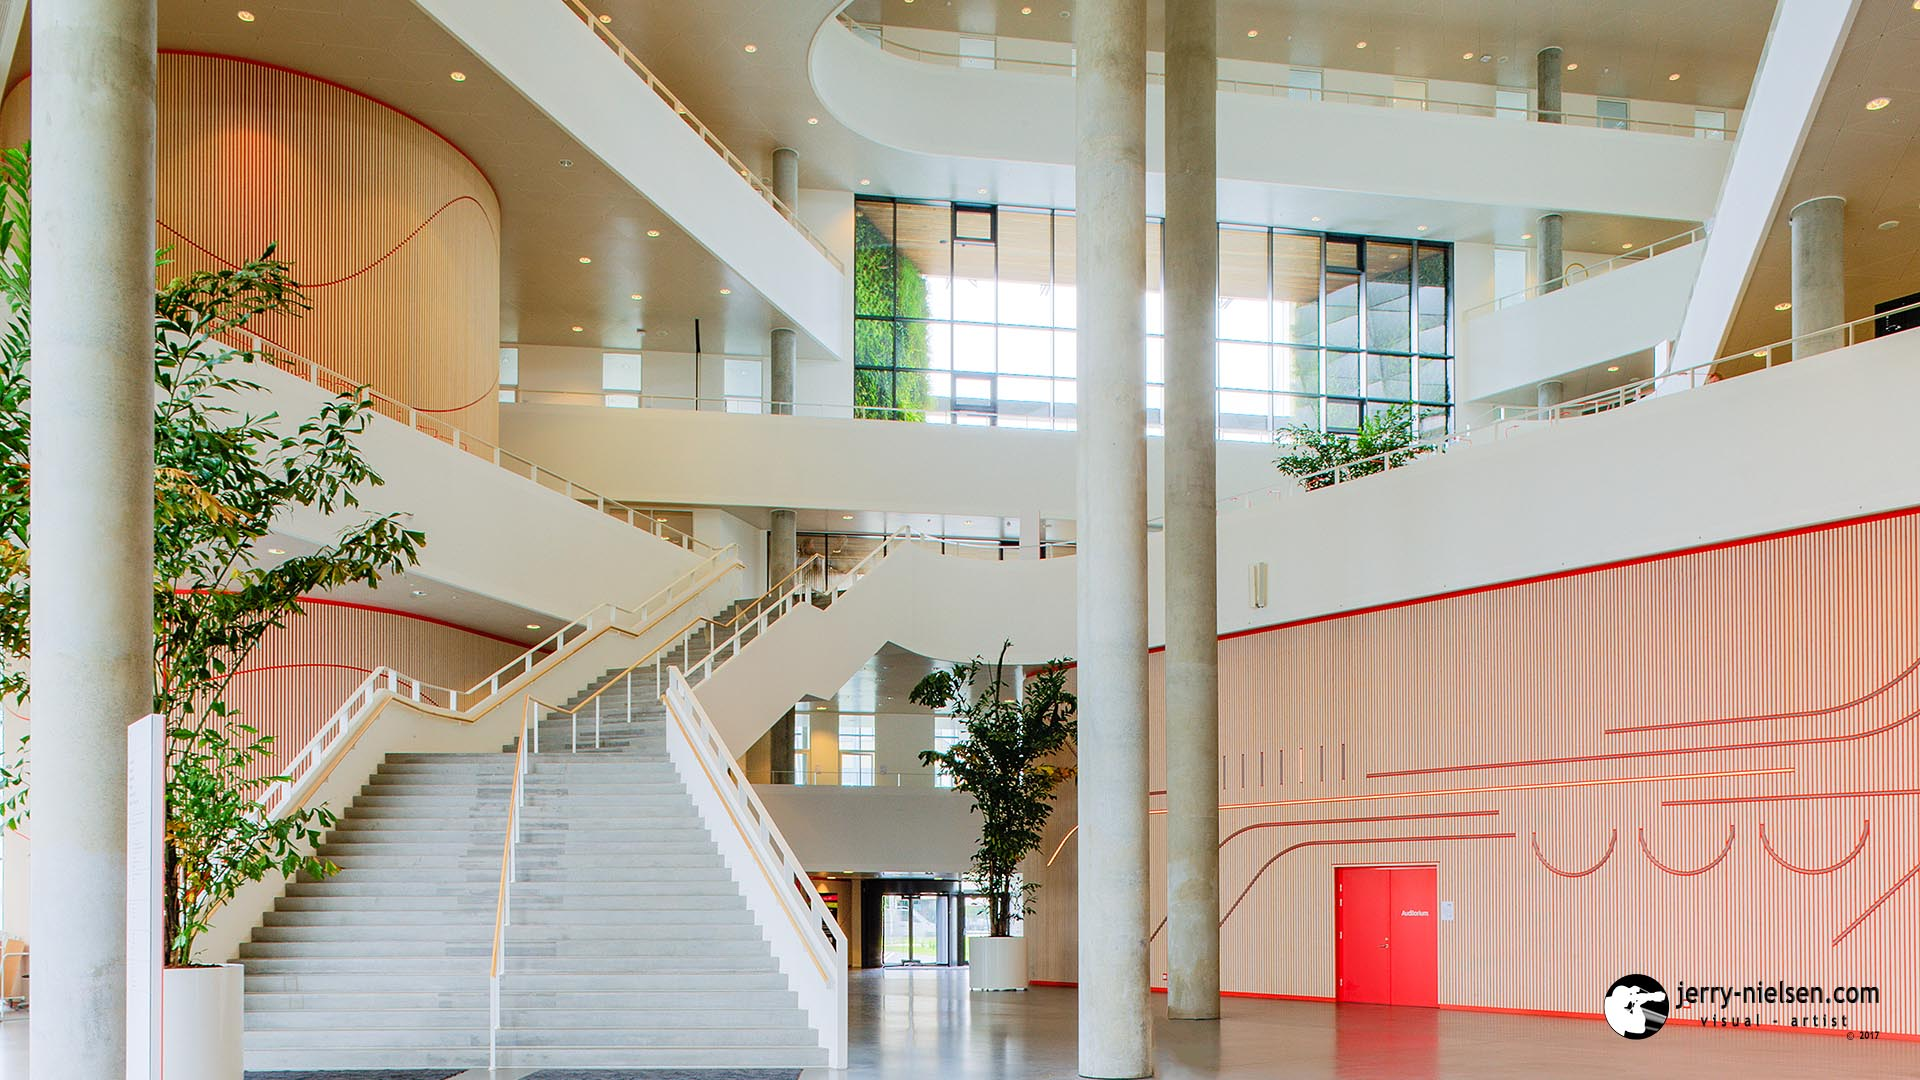 University of Southern Denmark, Mian Stairway Inside